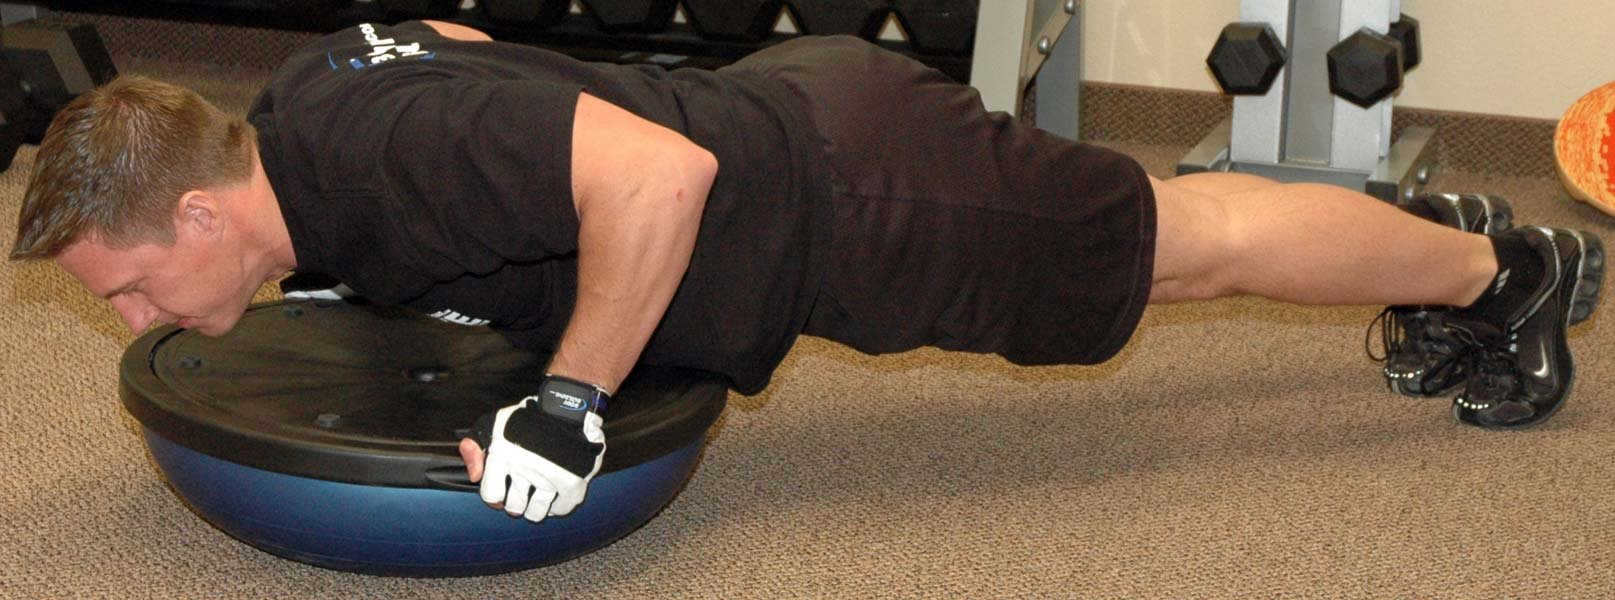 10 Push-Up Variations for Added Chest Volume, Frequency